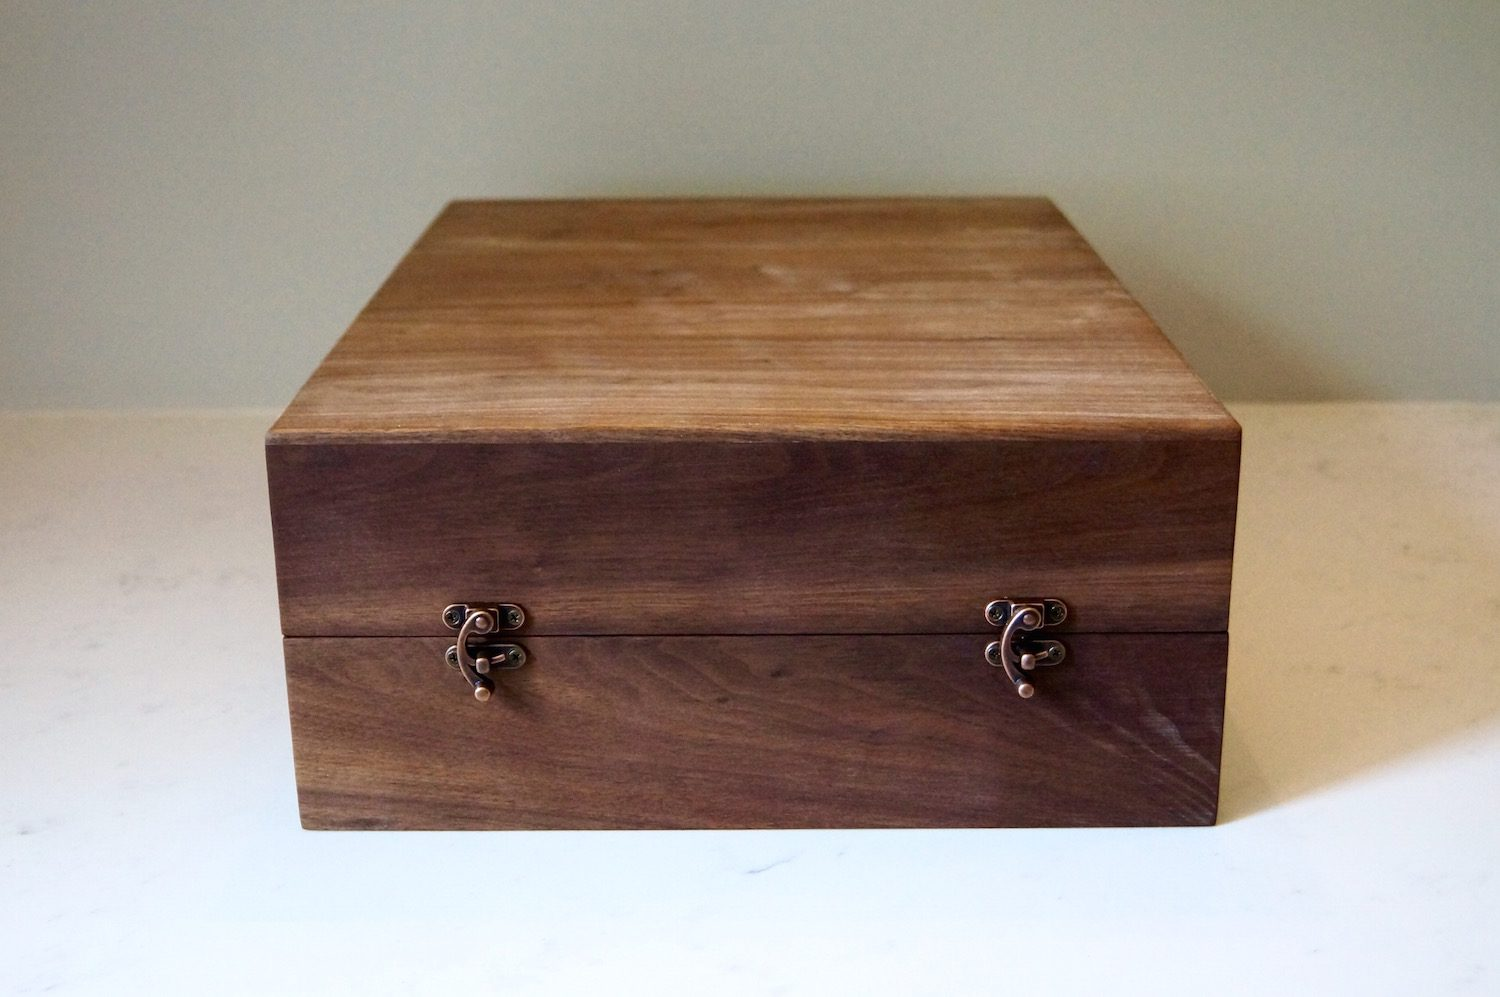 wooden-box-to-order-makemesomethingspecial.com